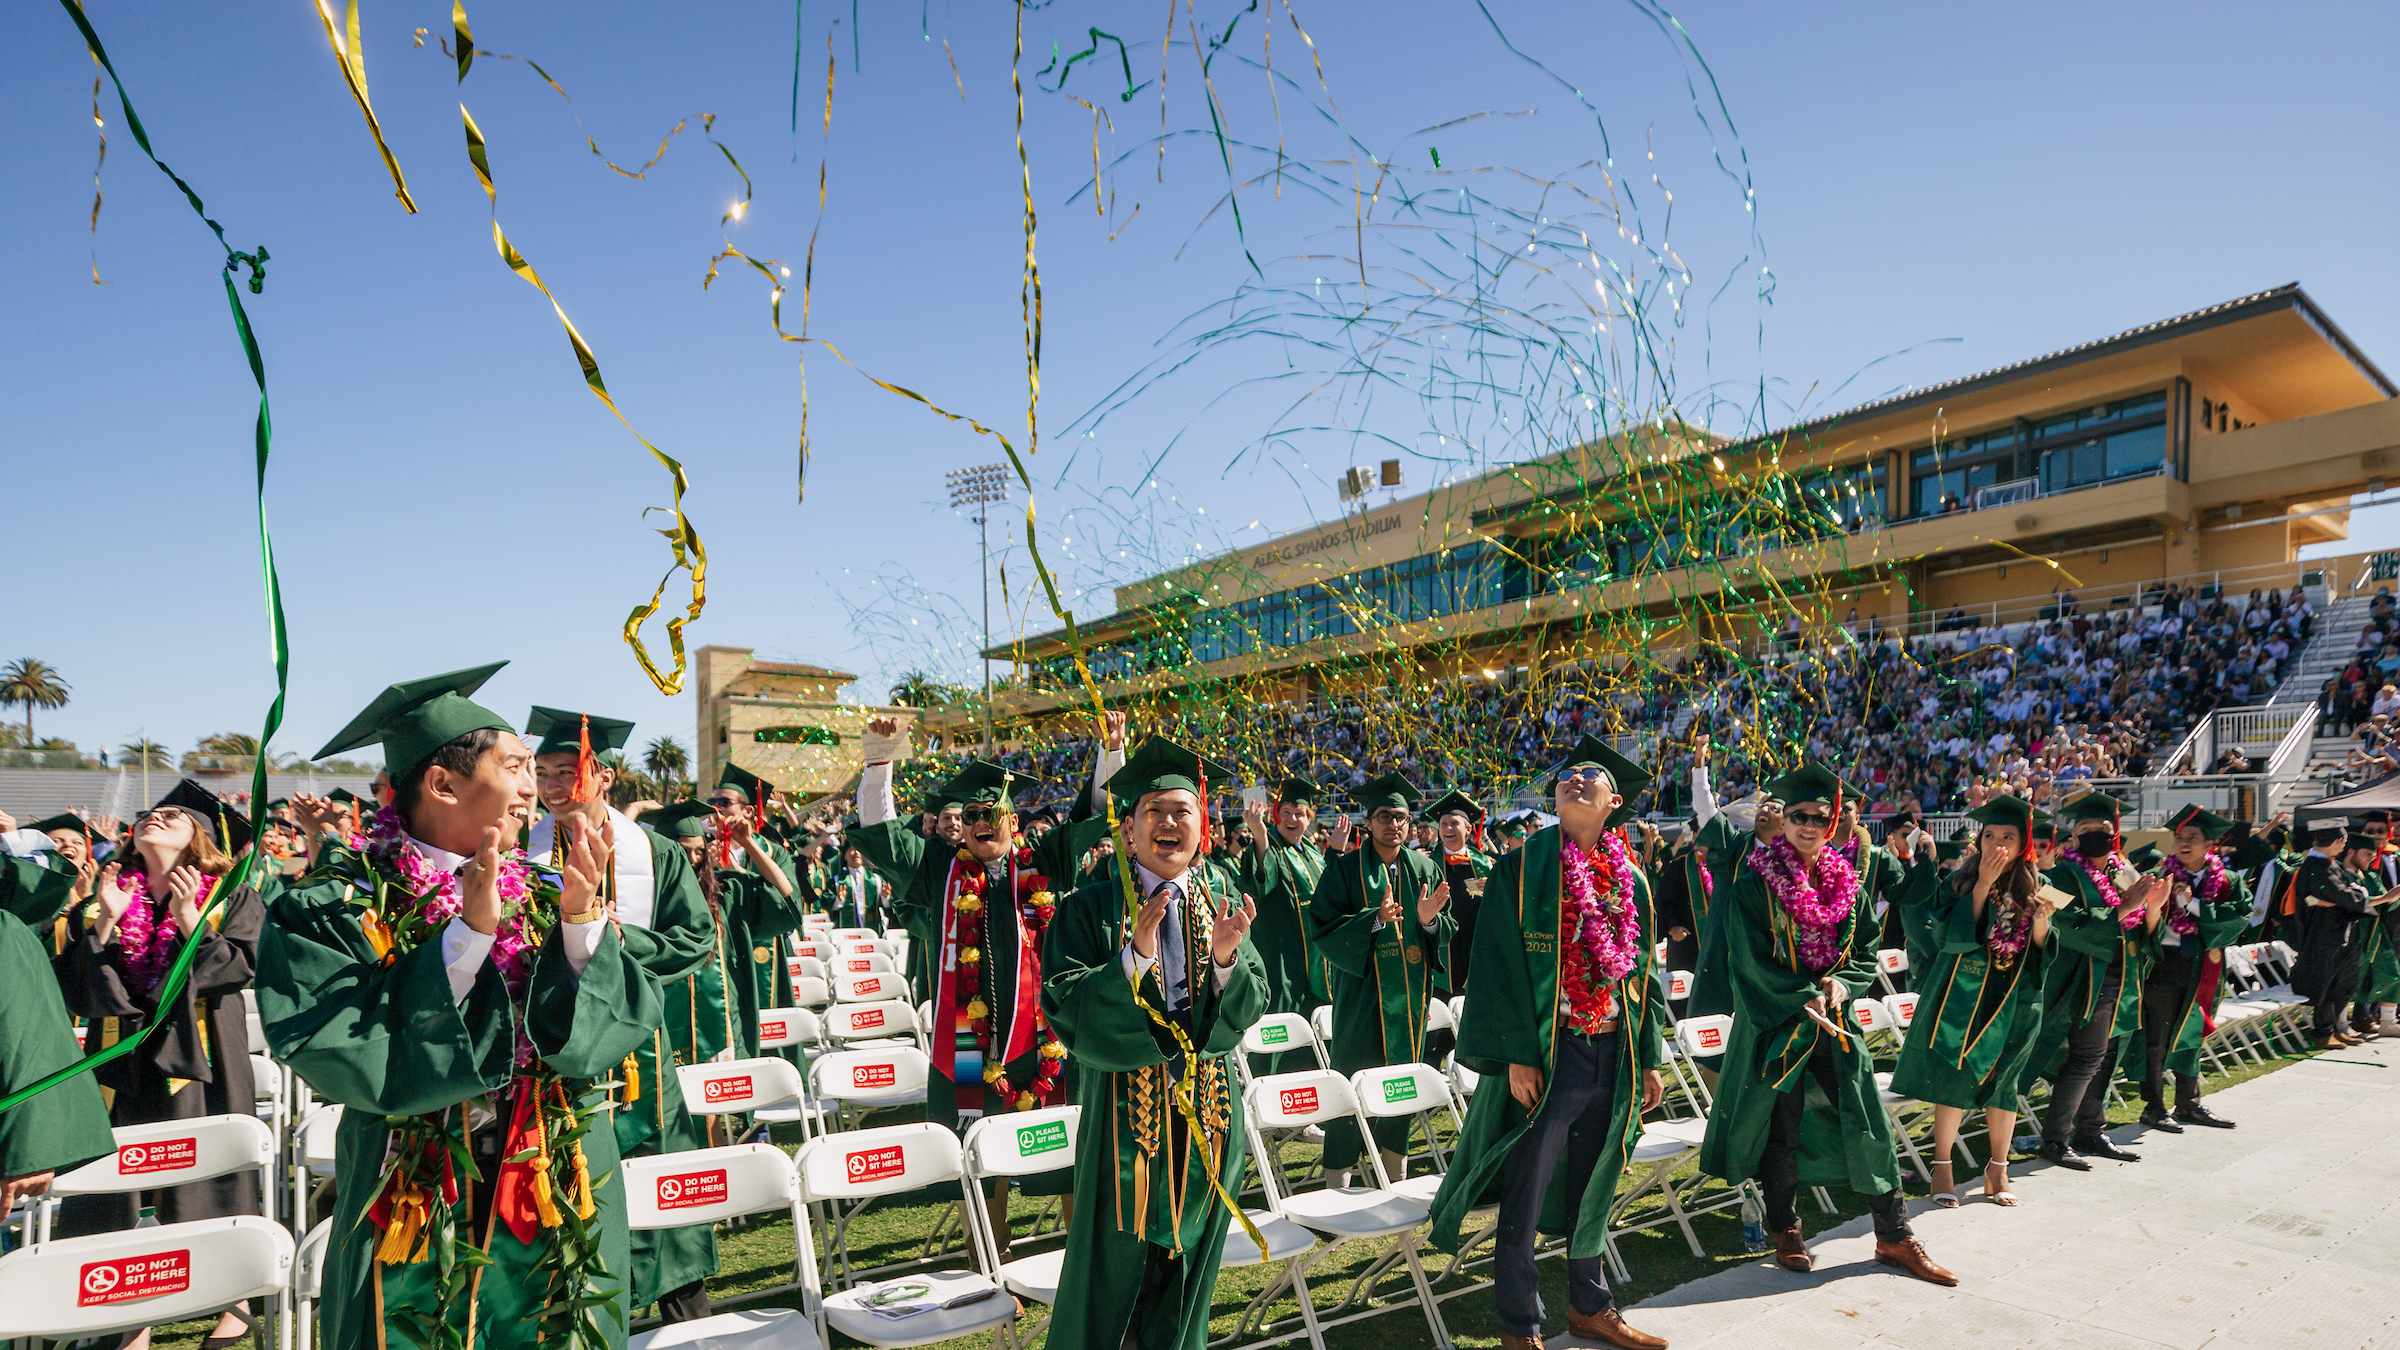 Graduates in green robes, spaced two seats apart, stand and cheer in Spanos Stadium as green and gold streamers fly through the air.